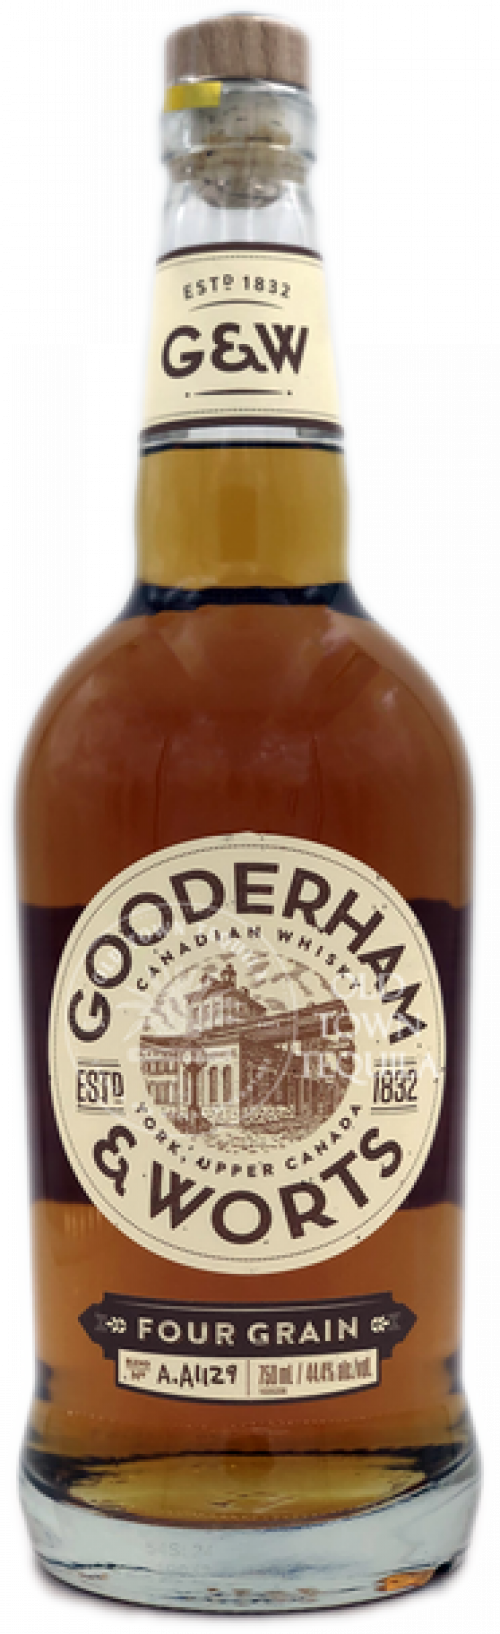 Gooderham & Worts Canadian Whisky 750ml